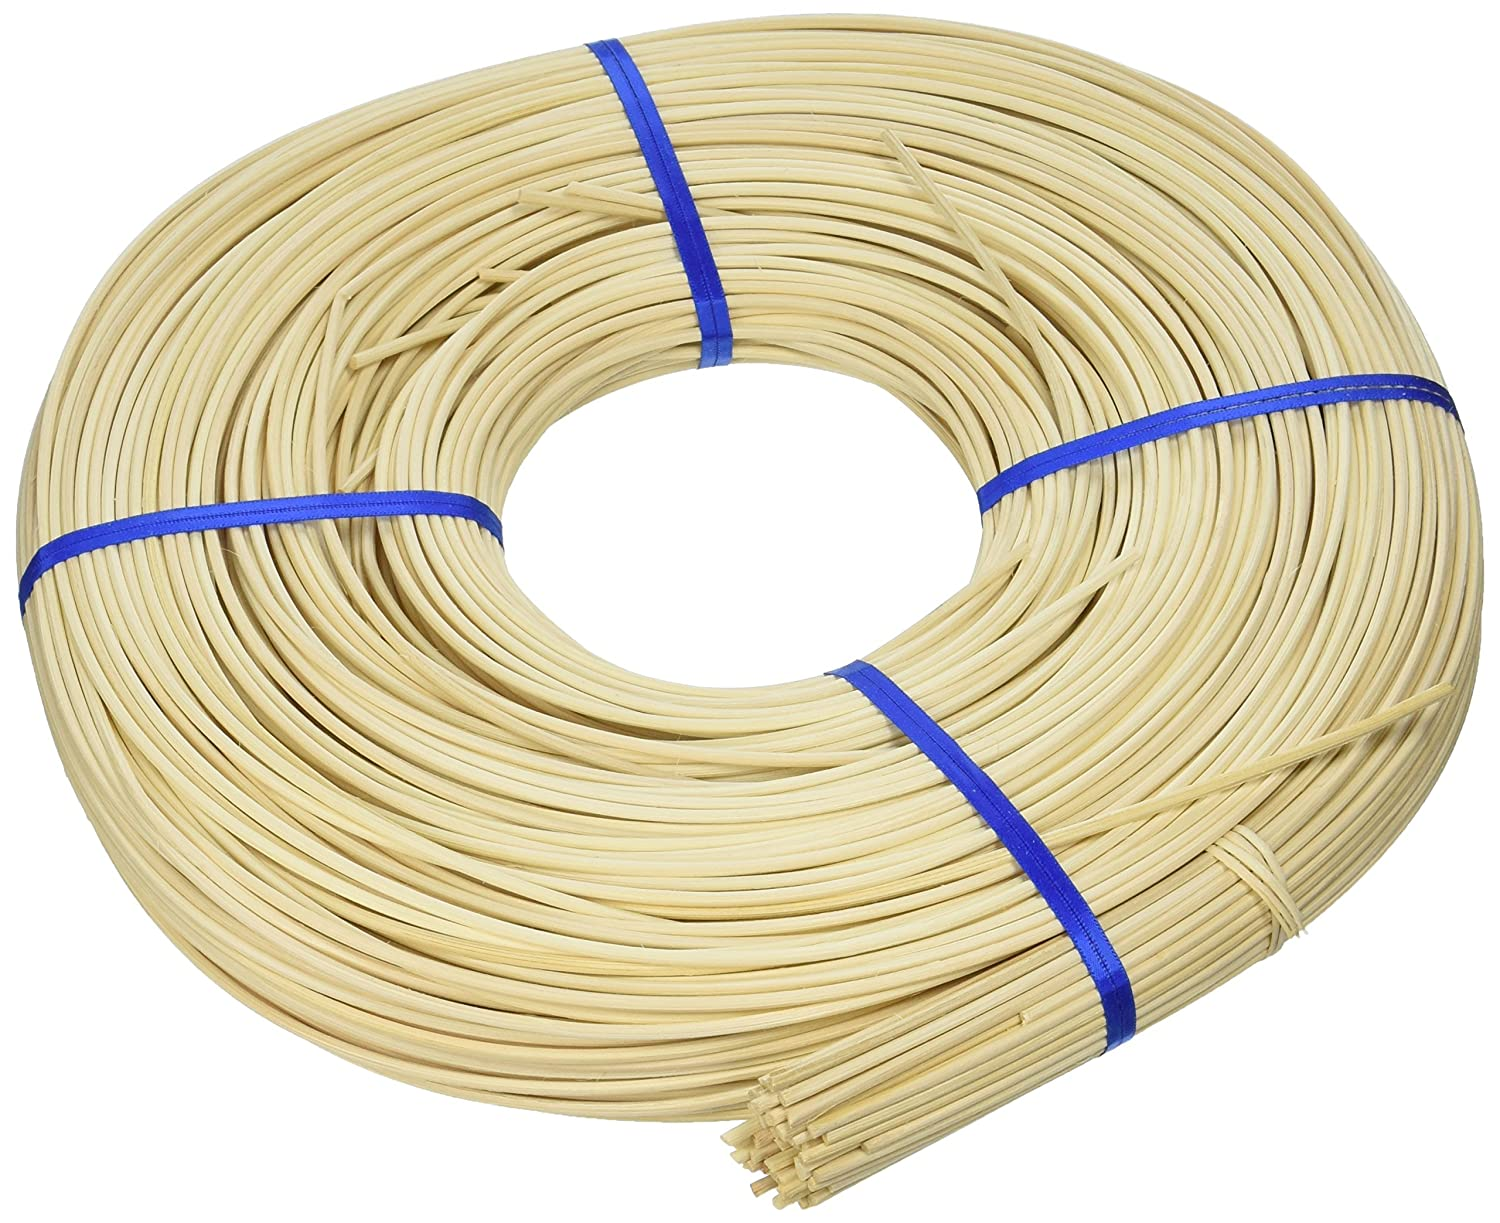 Commonwealth Basket Round Reed #4 2-3/4mm 1-Pound Coil, Approximately 500-Feet 4RR